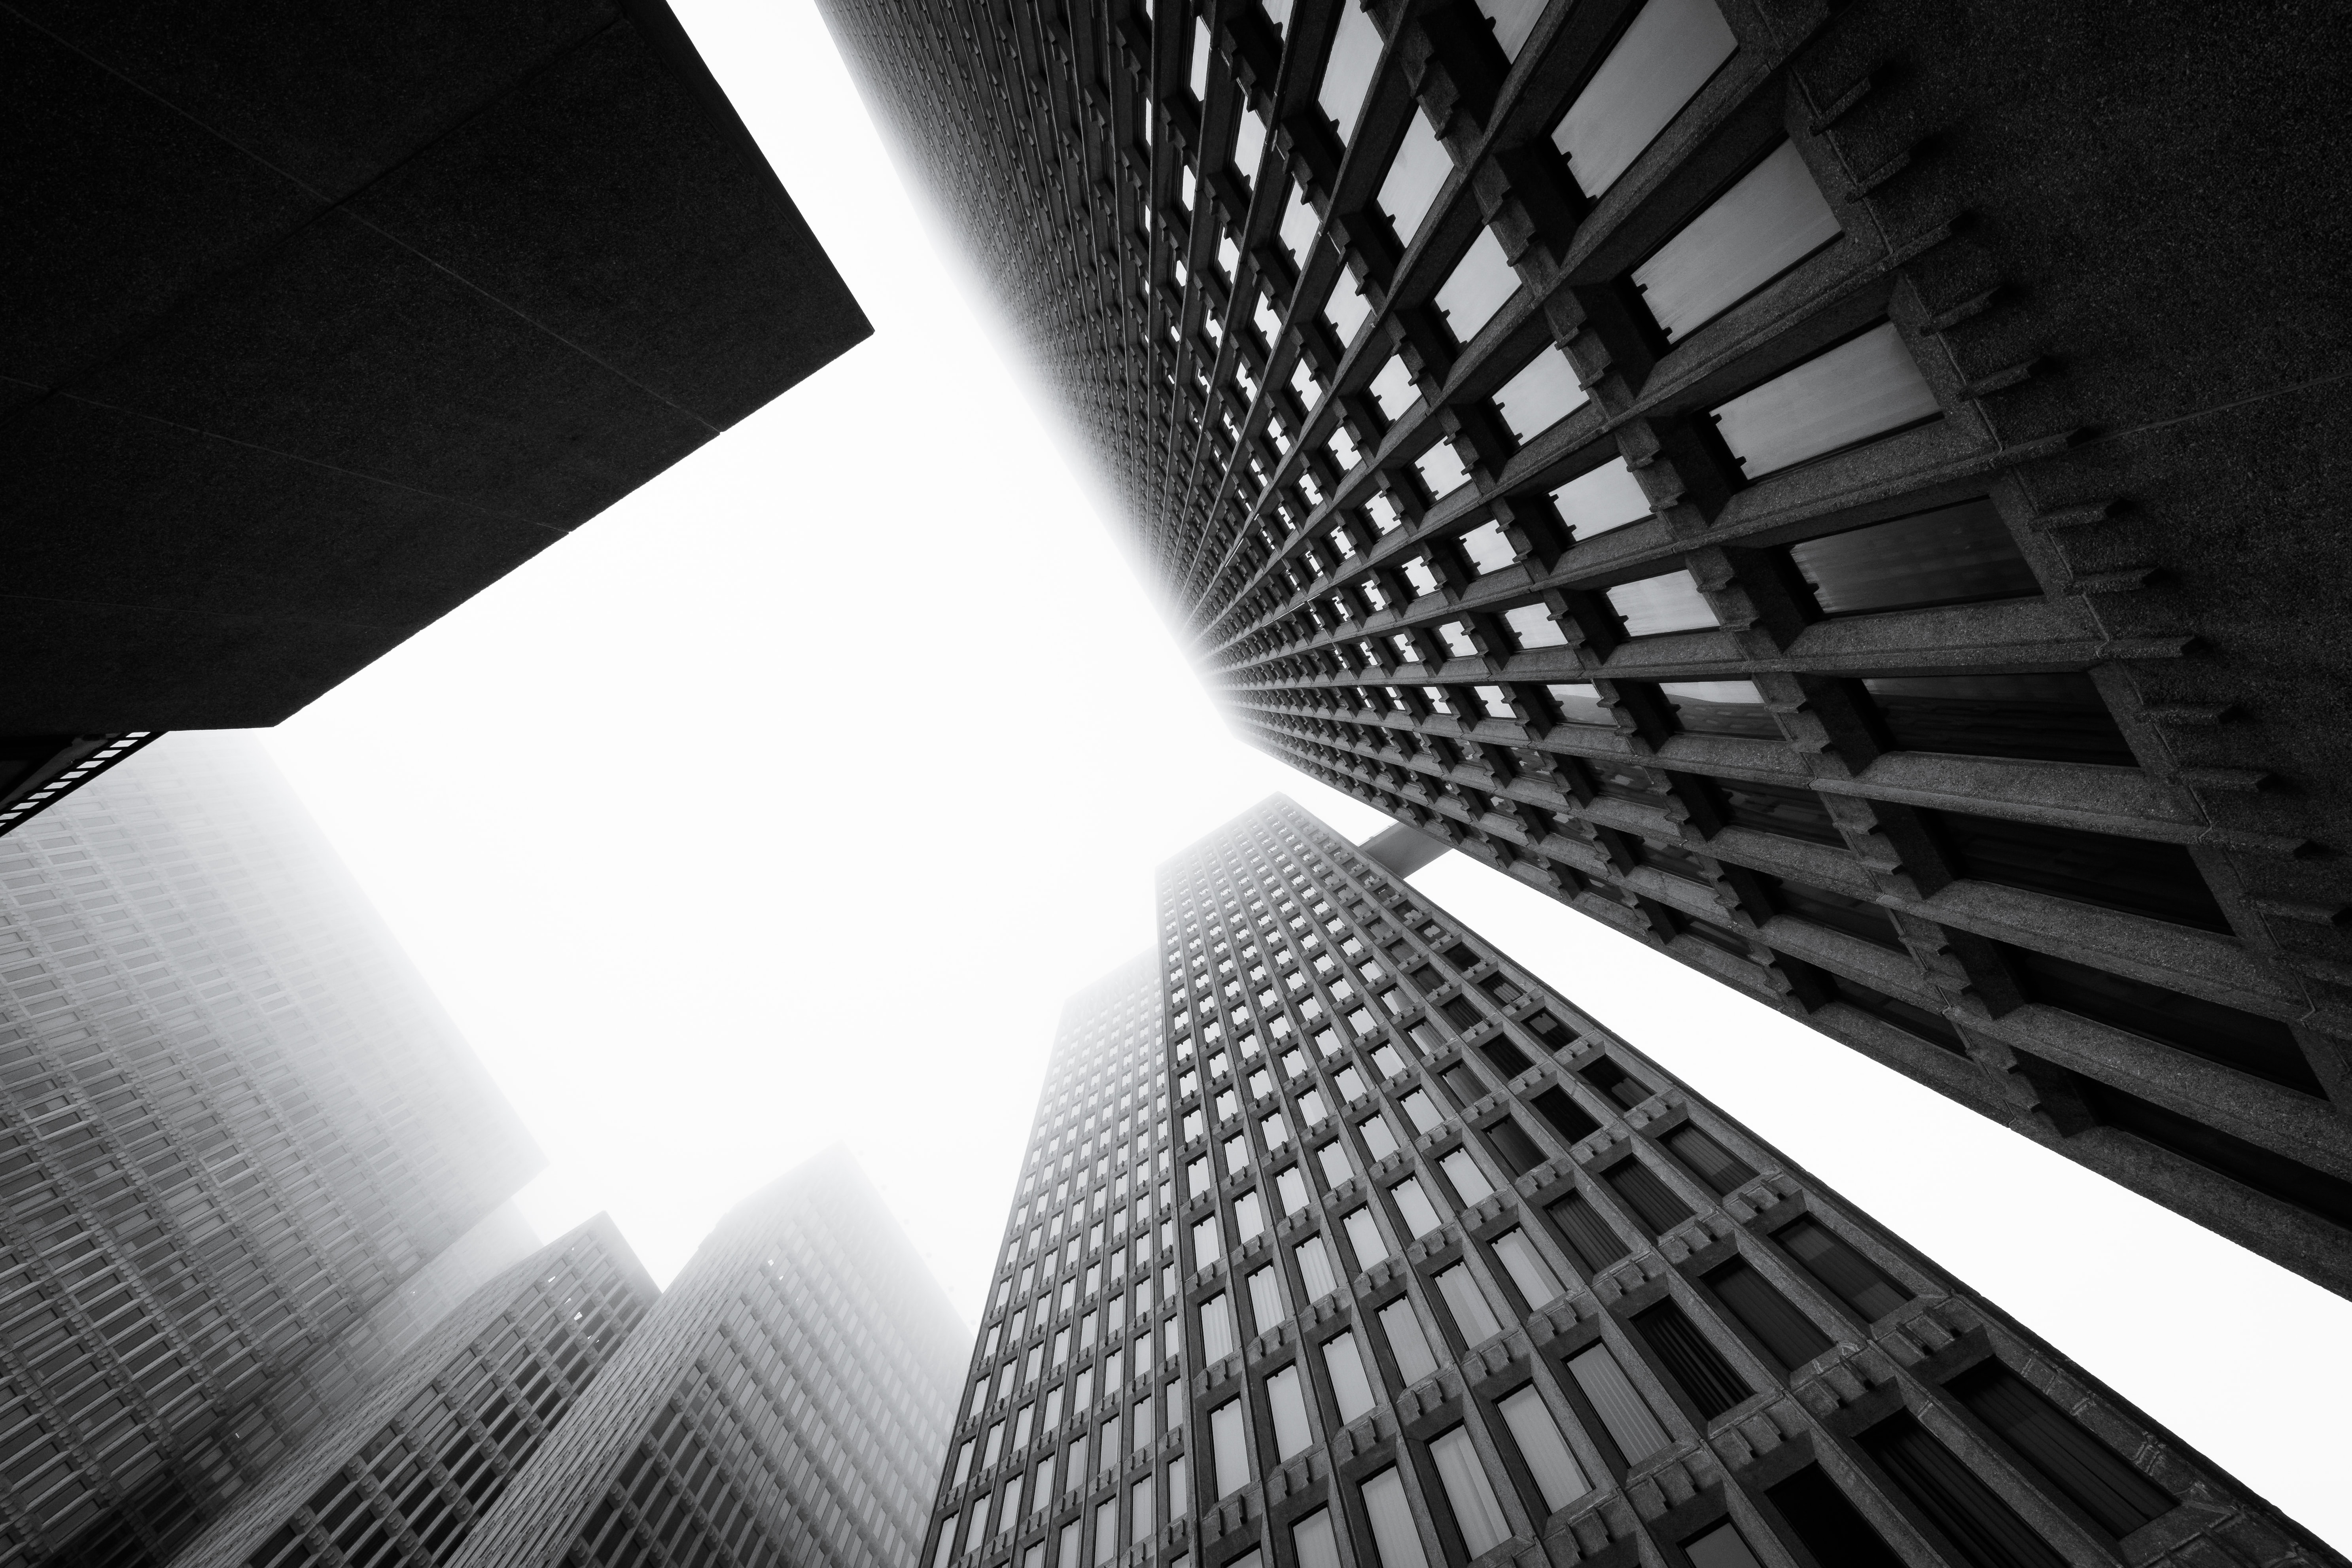 worm's-eye view photography of buildings